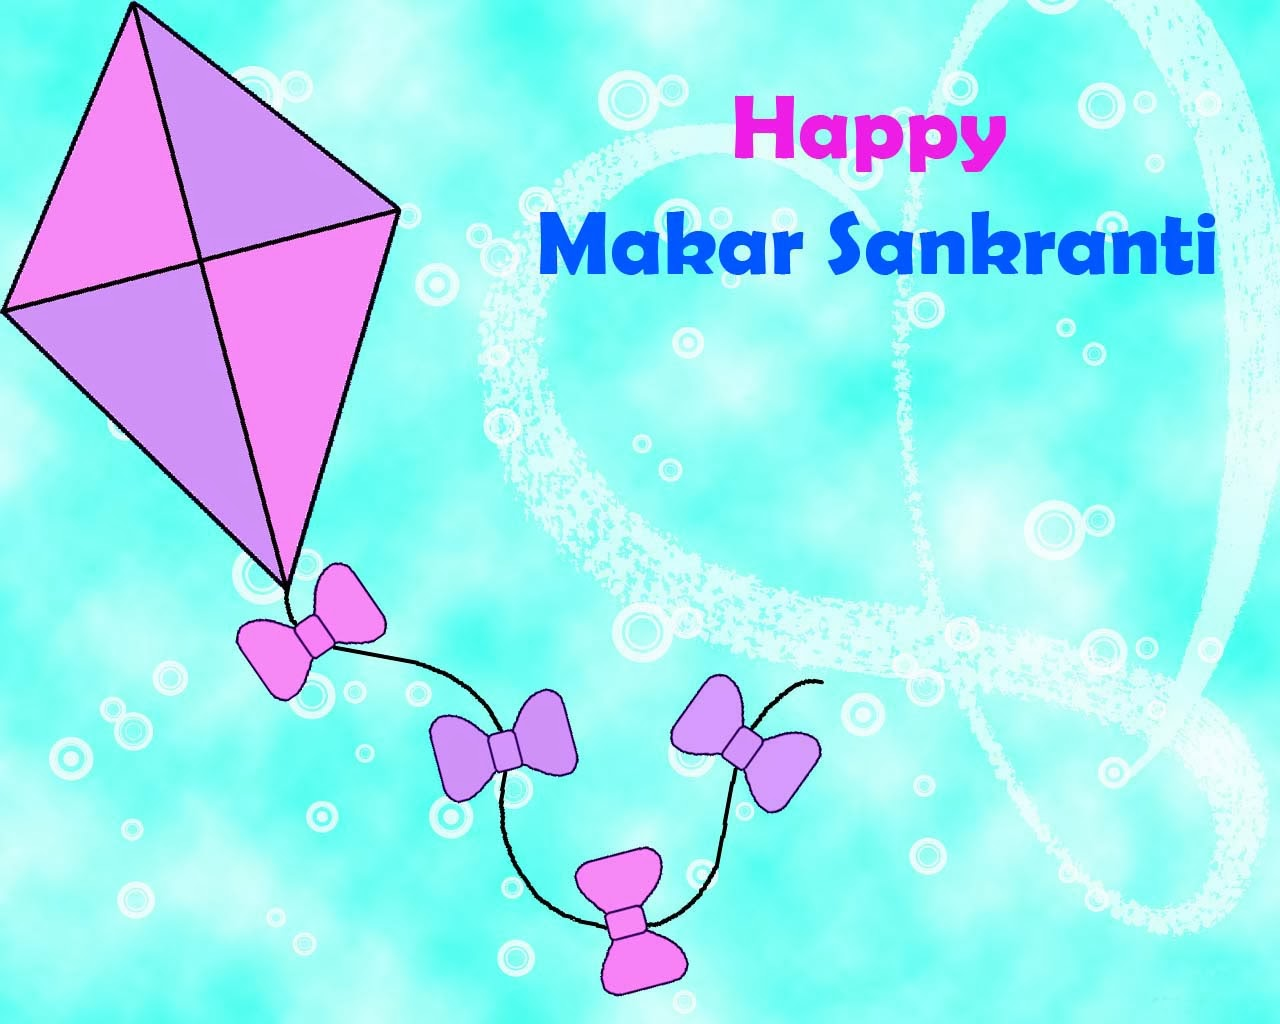 makar sankranti hd images - photo #14